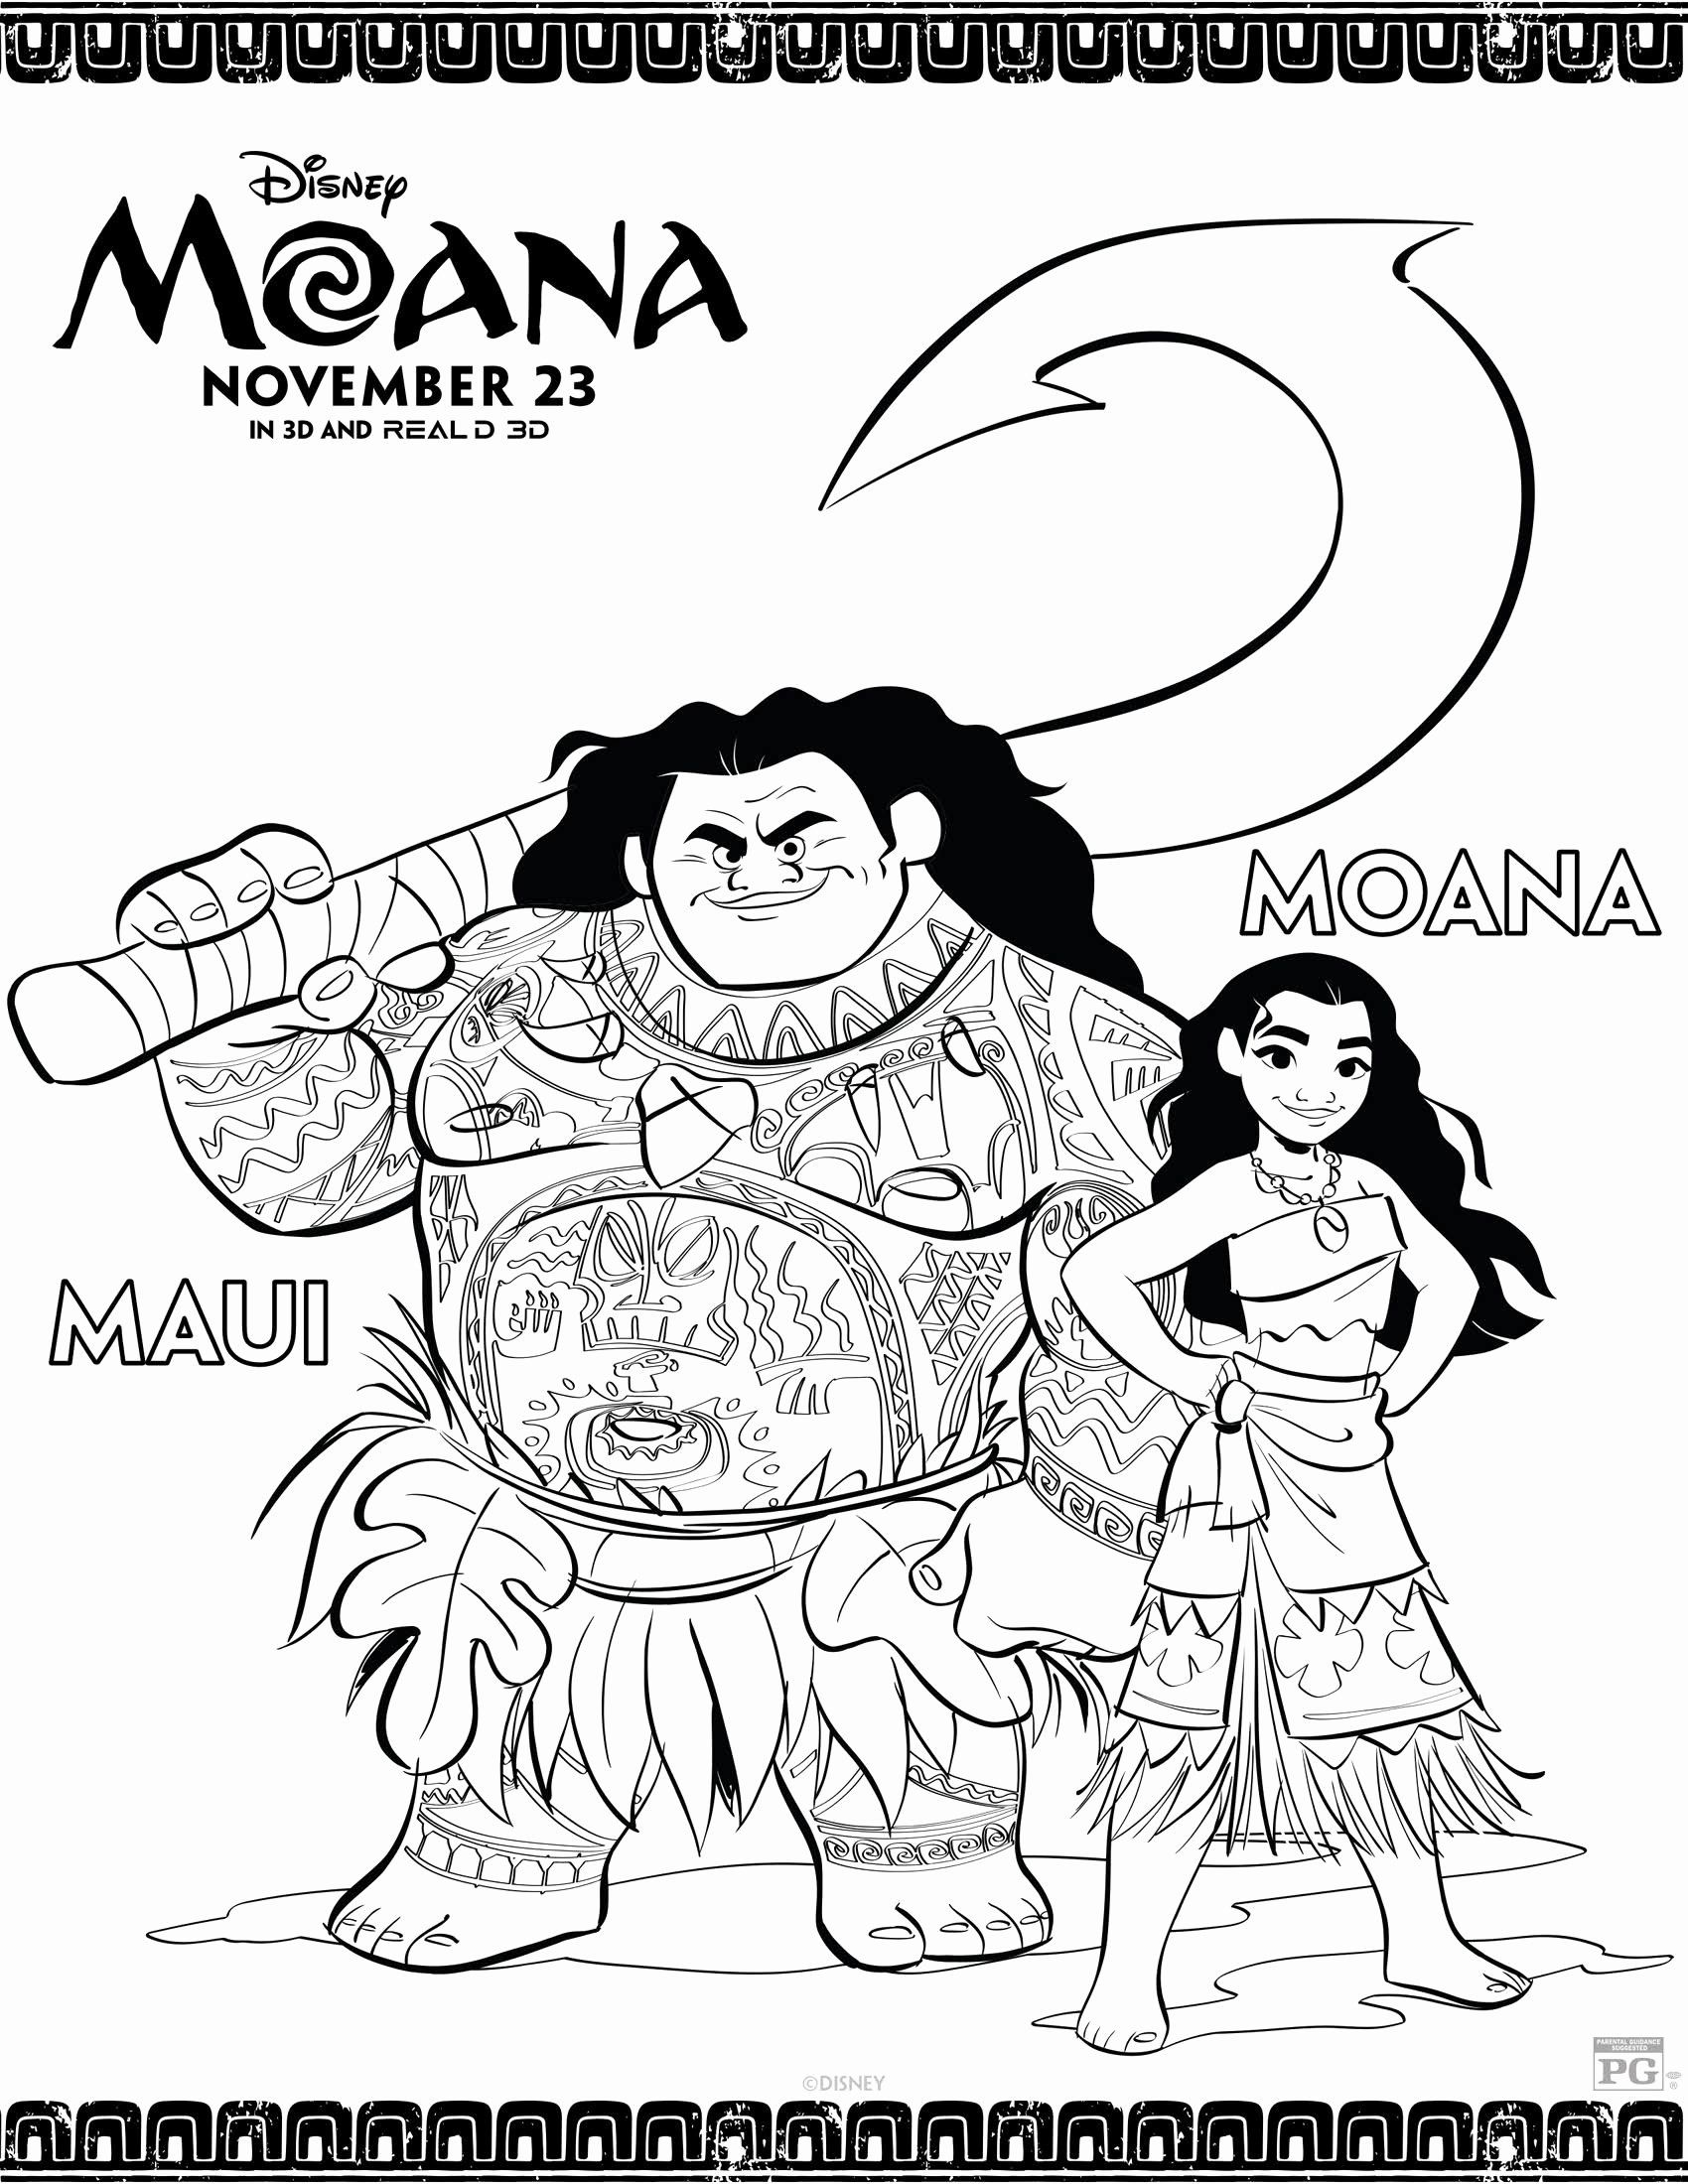 Disney Coloring Pages Moana Lovely Disney S Moana Coloring Pages And Activity Sheets Printables Moana Coloring Moana Coloring Pages Free Disney Coloring Pages [ 2200 x 1700 Pixel ]